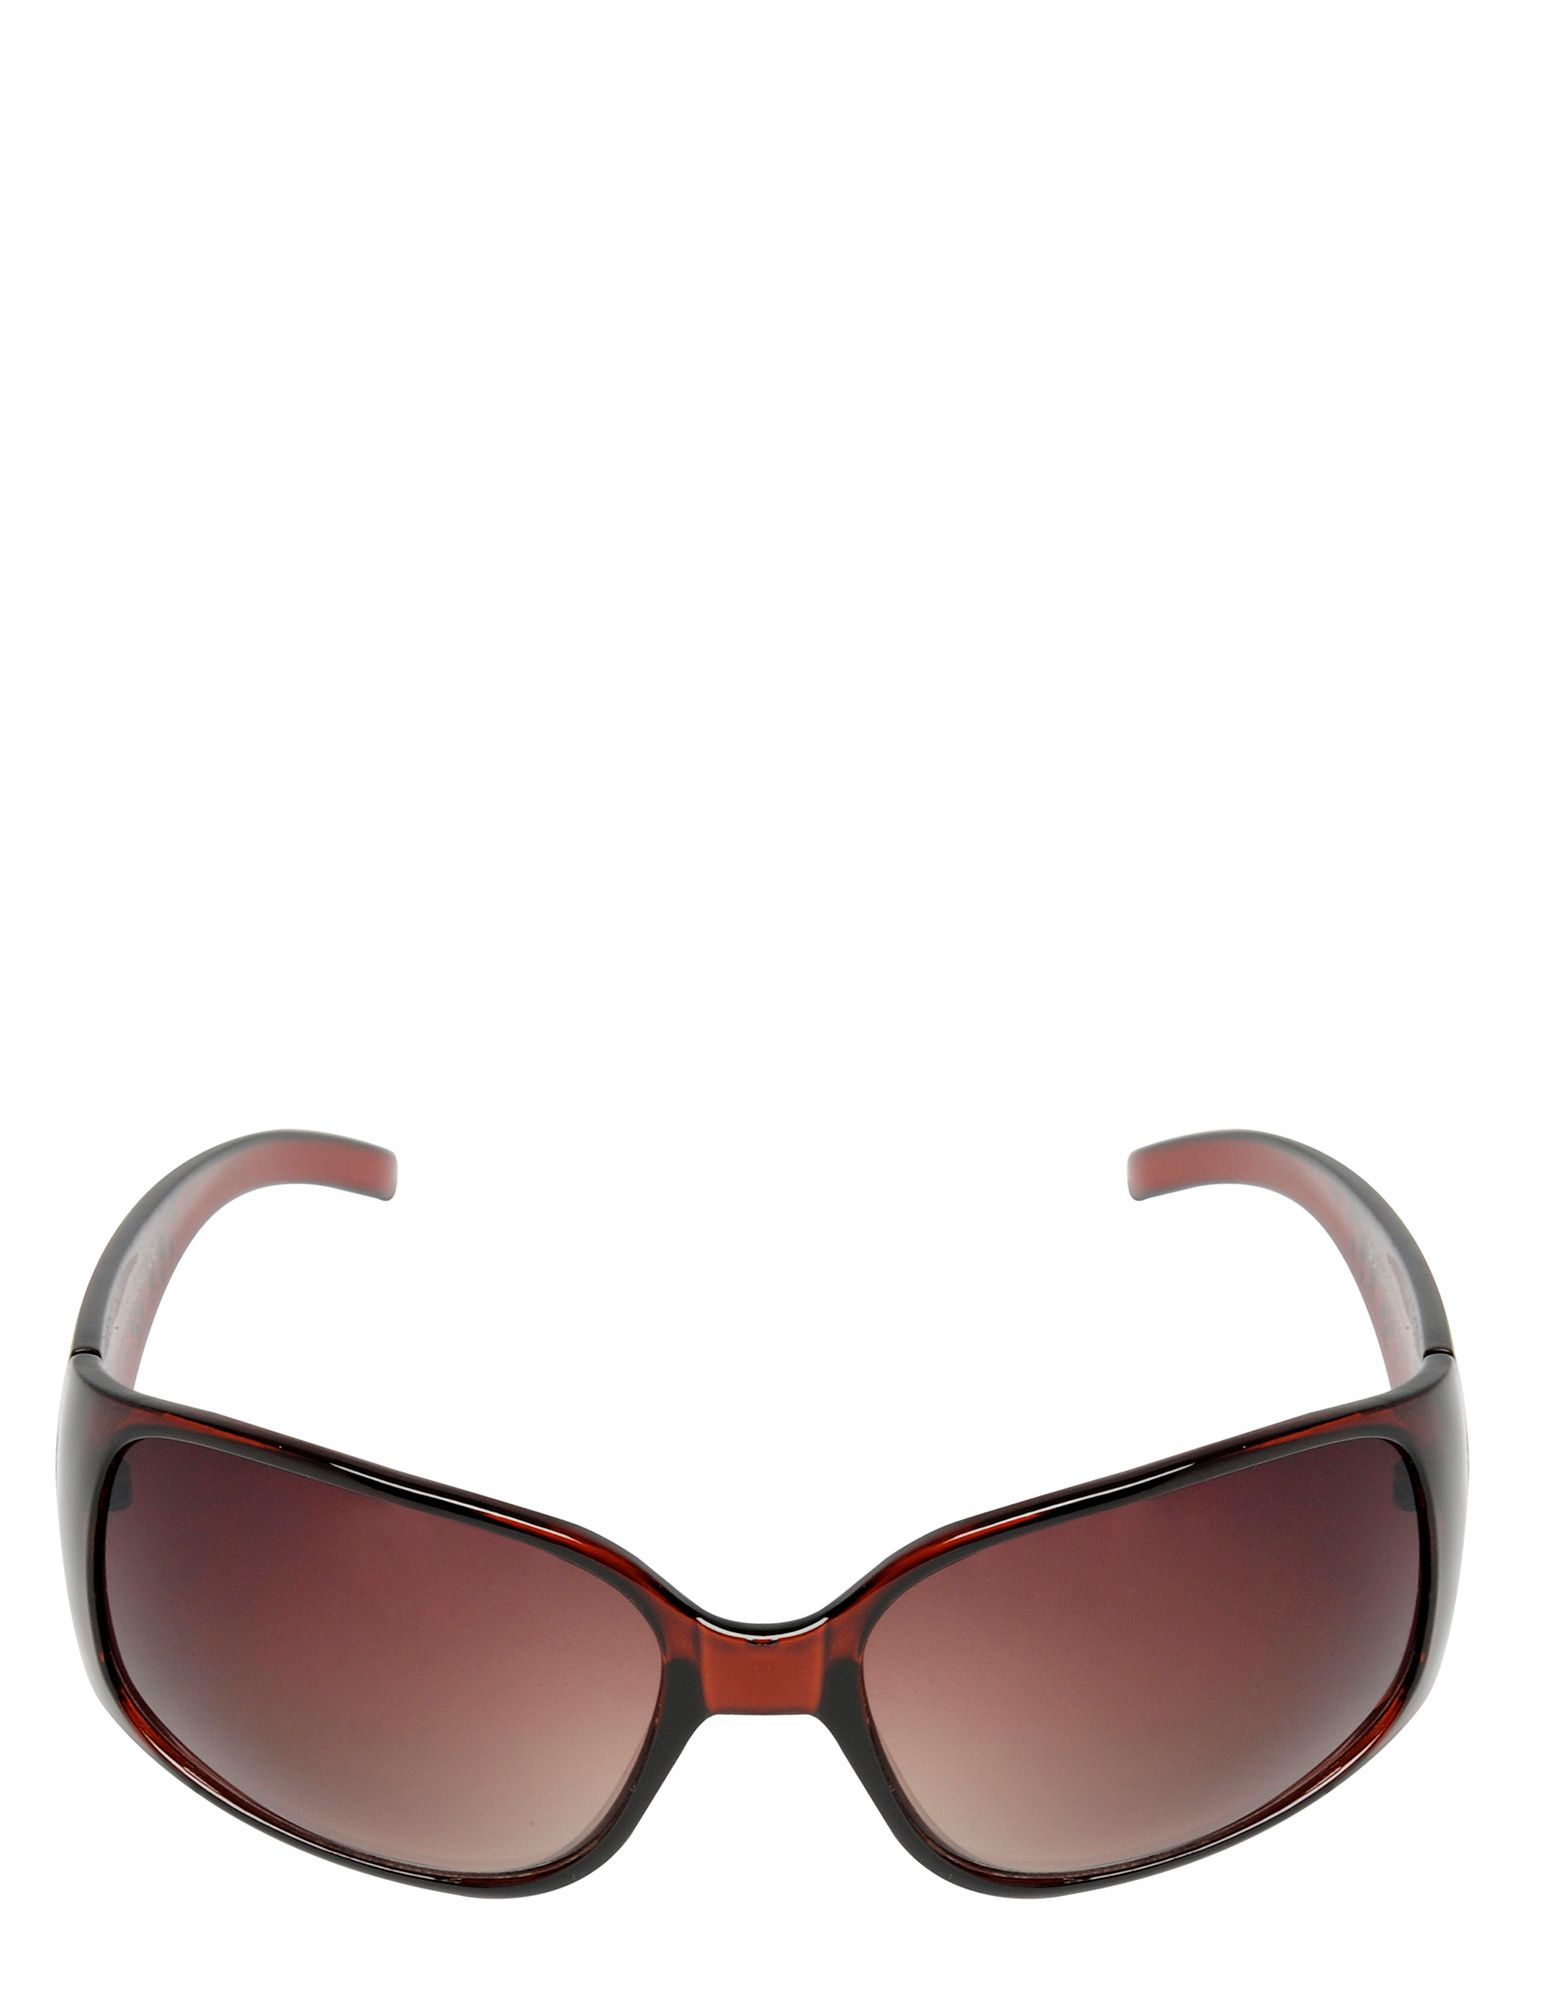 Brookhaven Betsy Rectangle Shape Sunglasses